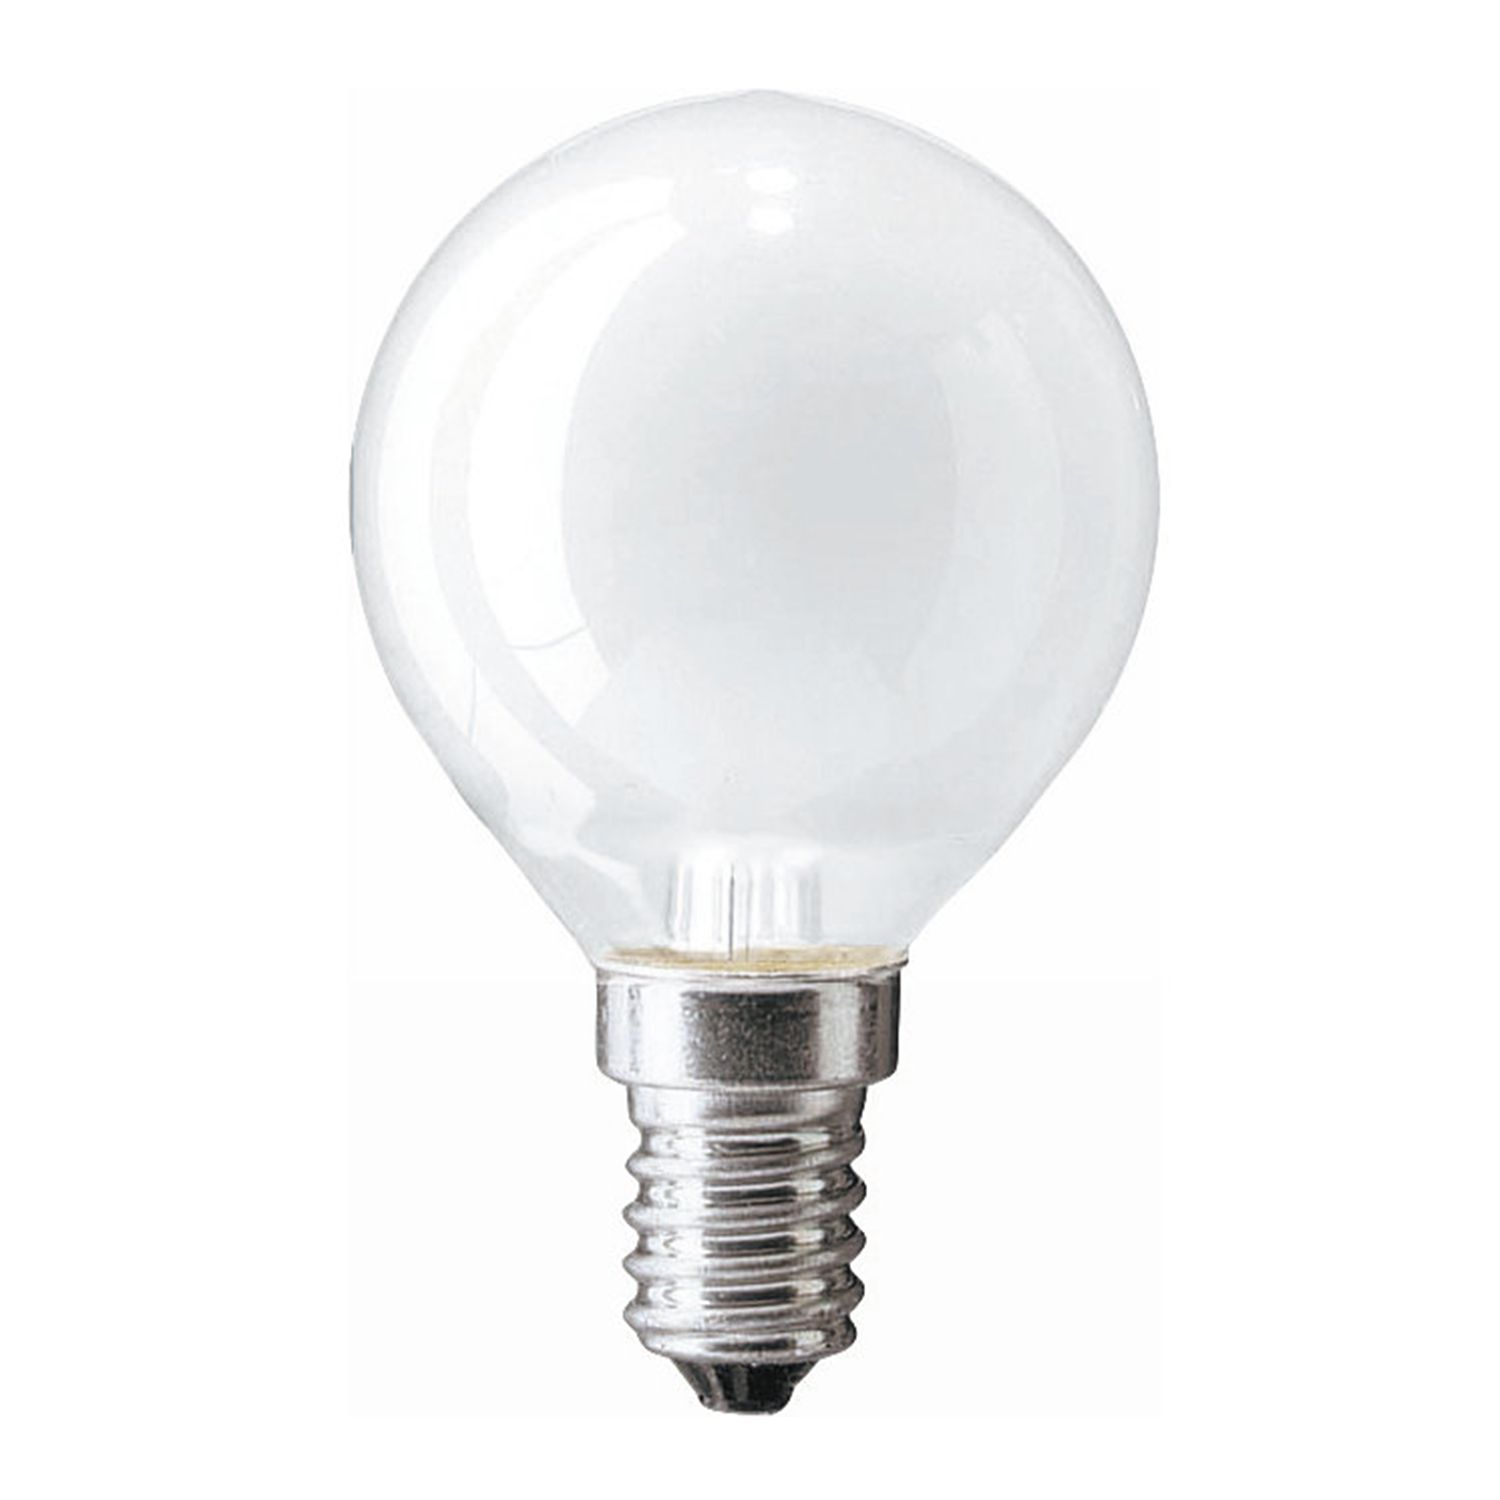 Standard Incandescent Bulb Round Frosted P45 E14 25W 230V